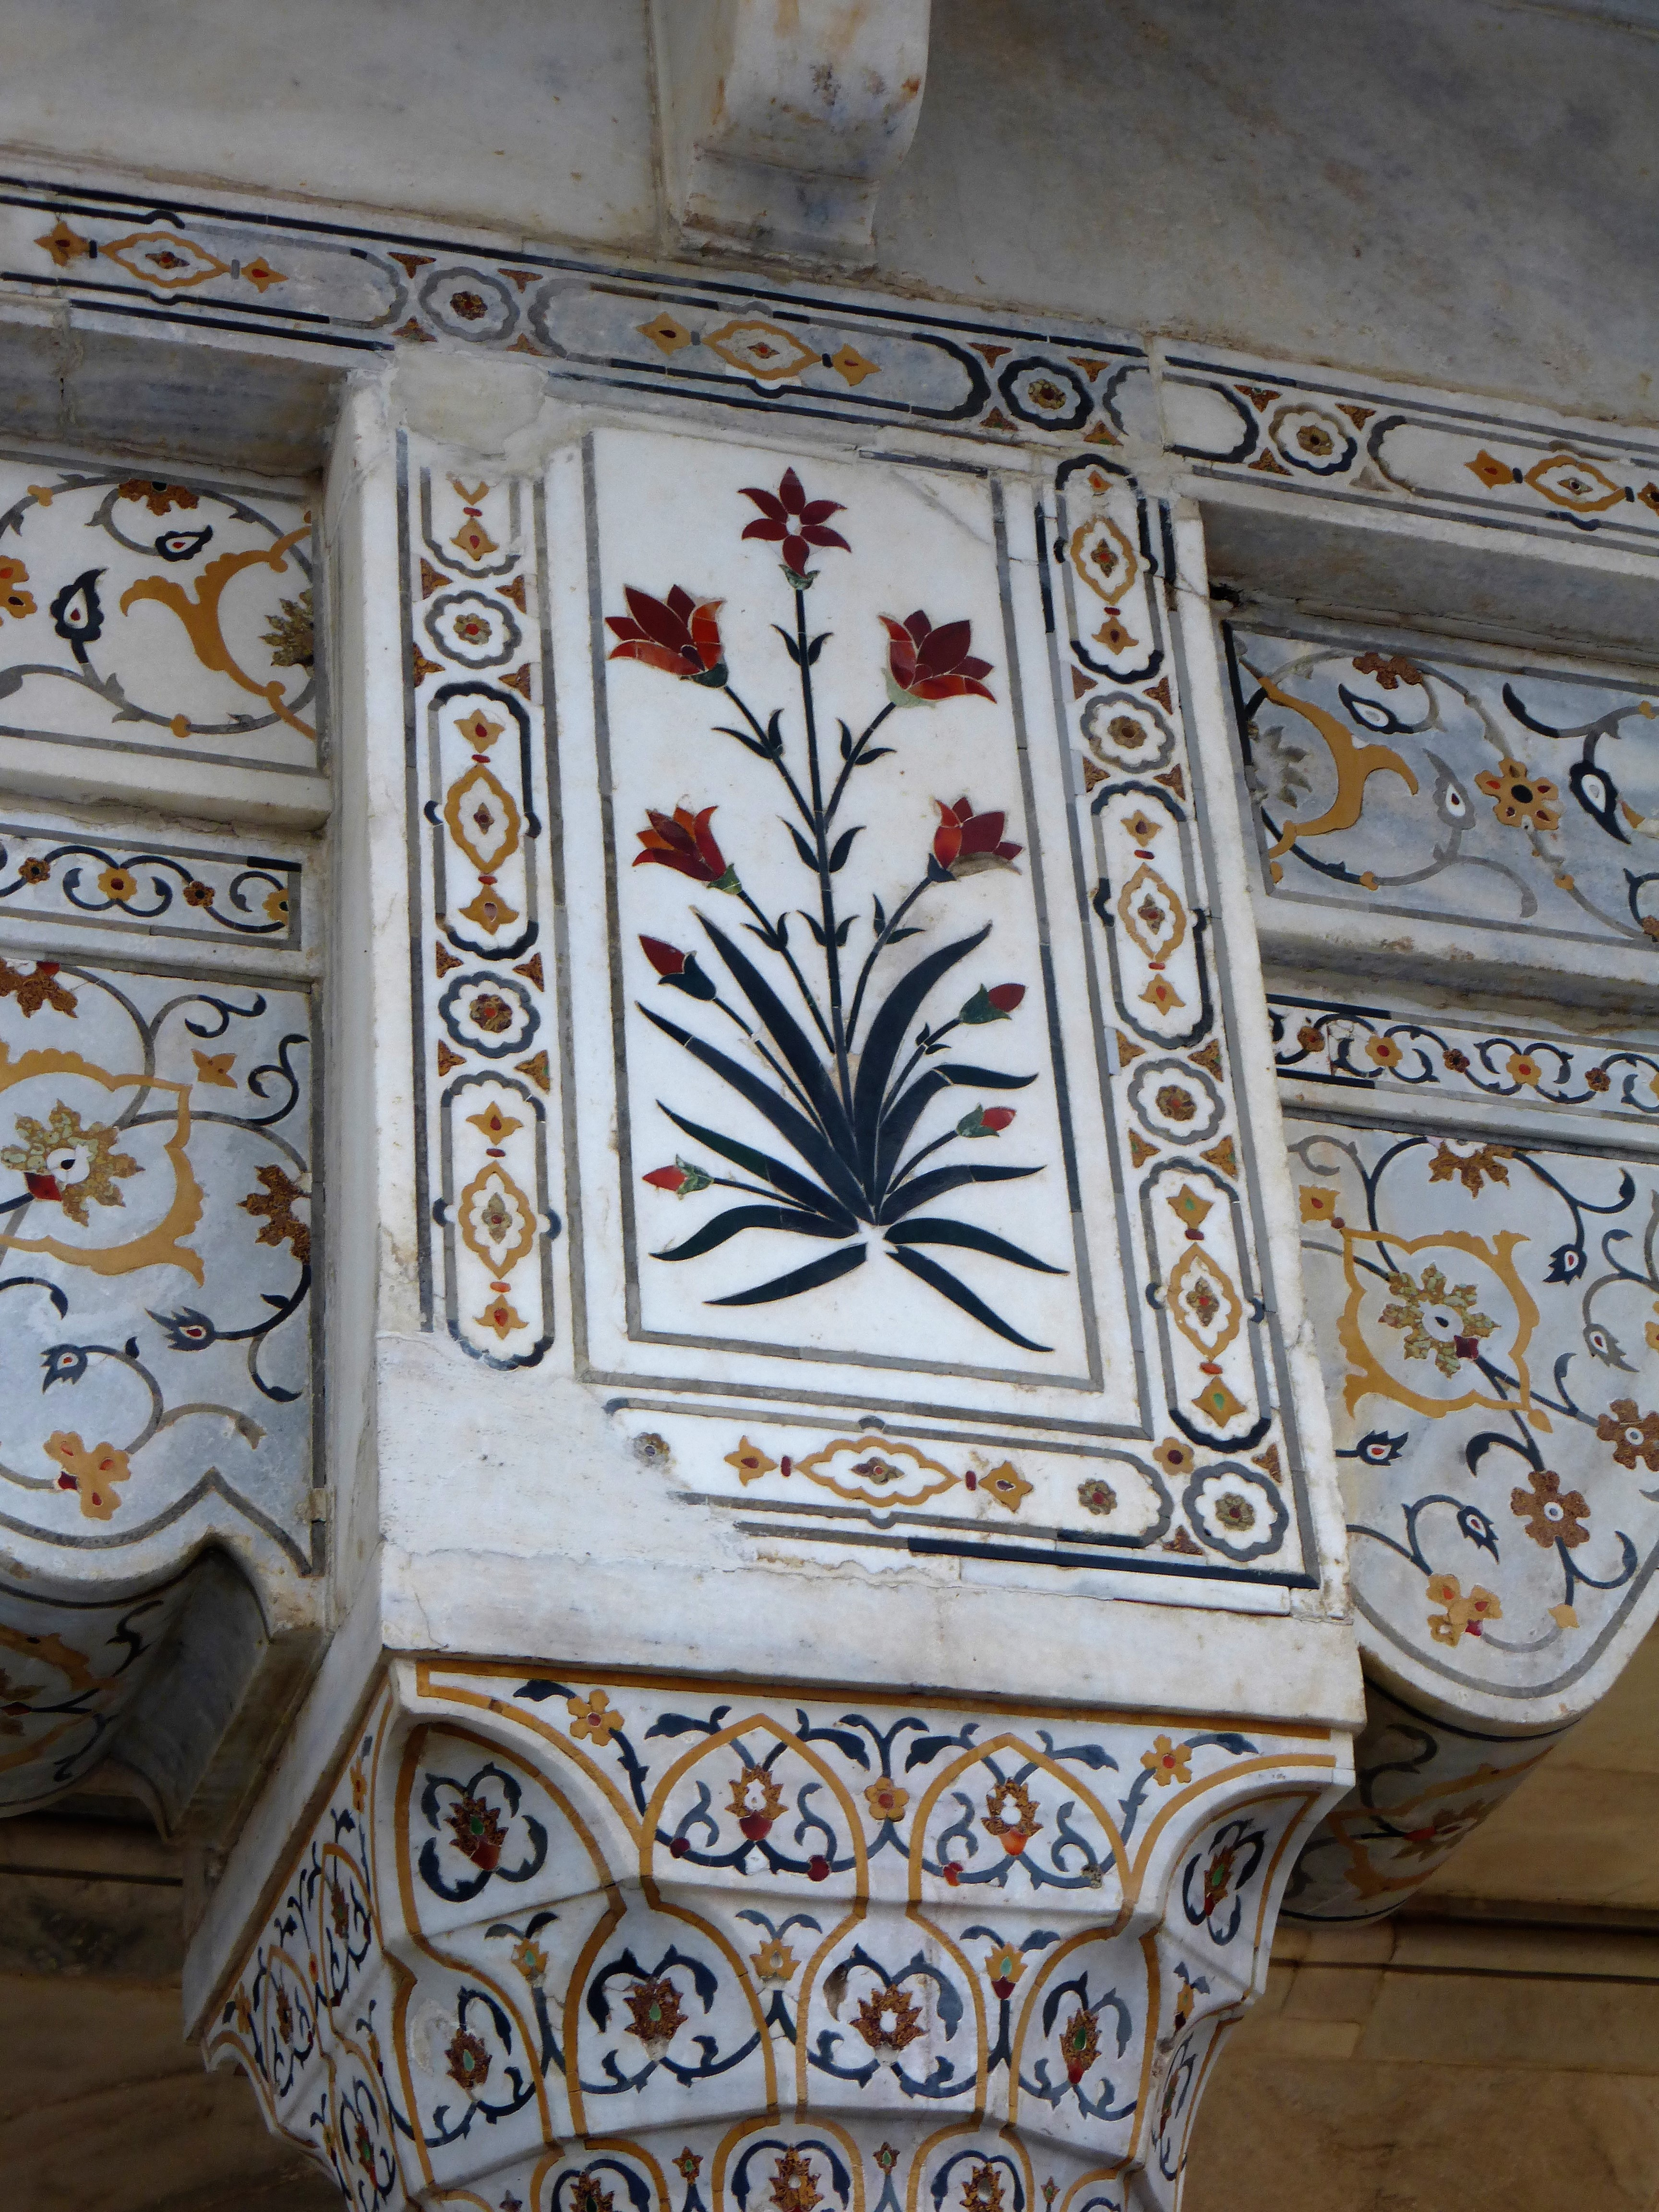 Agra Fort is intricately decorated with precious stones inset into marble